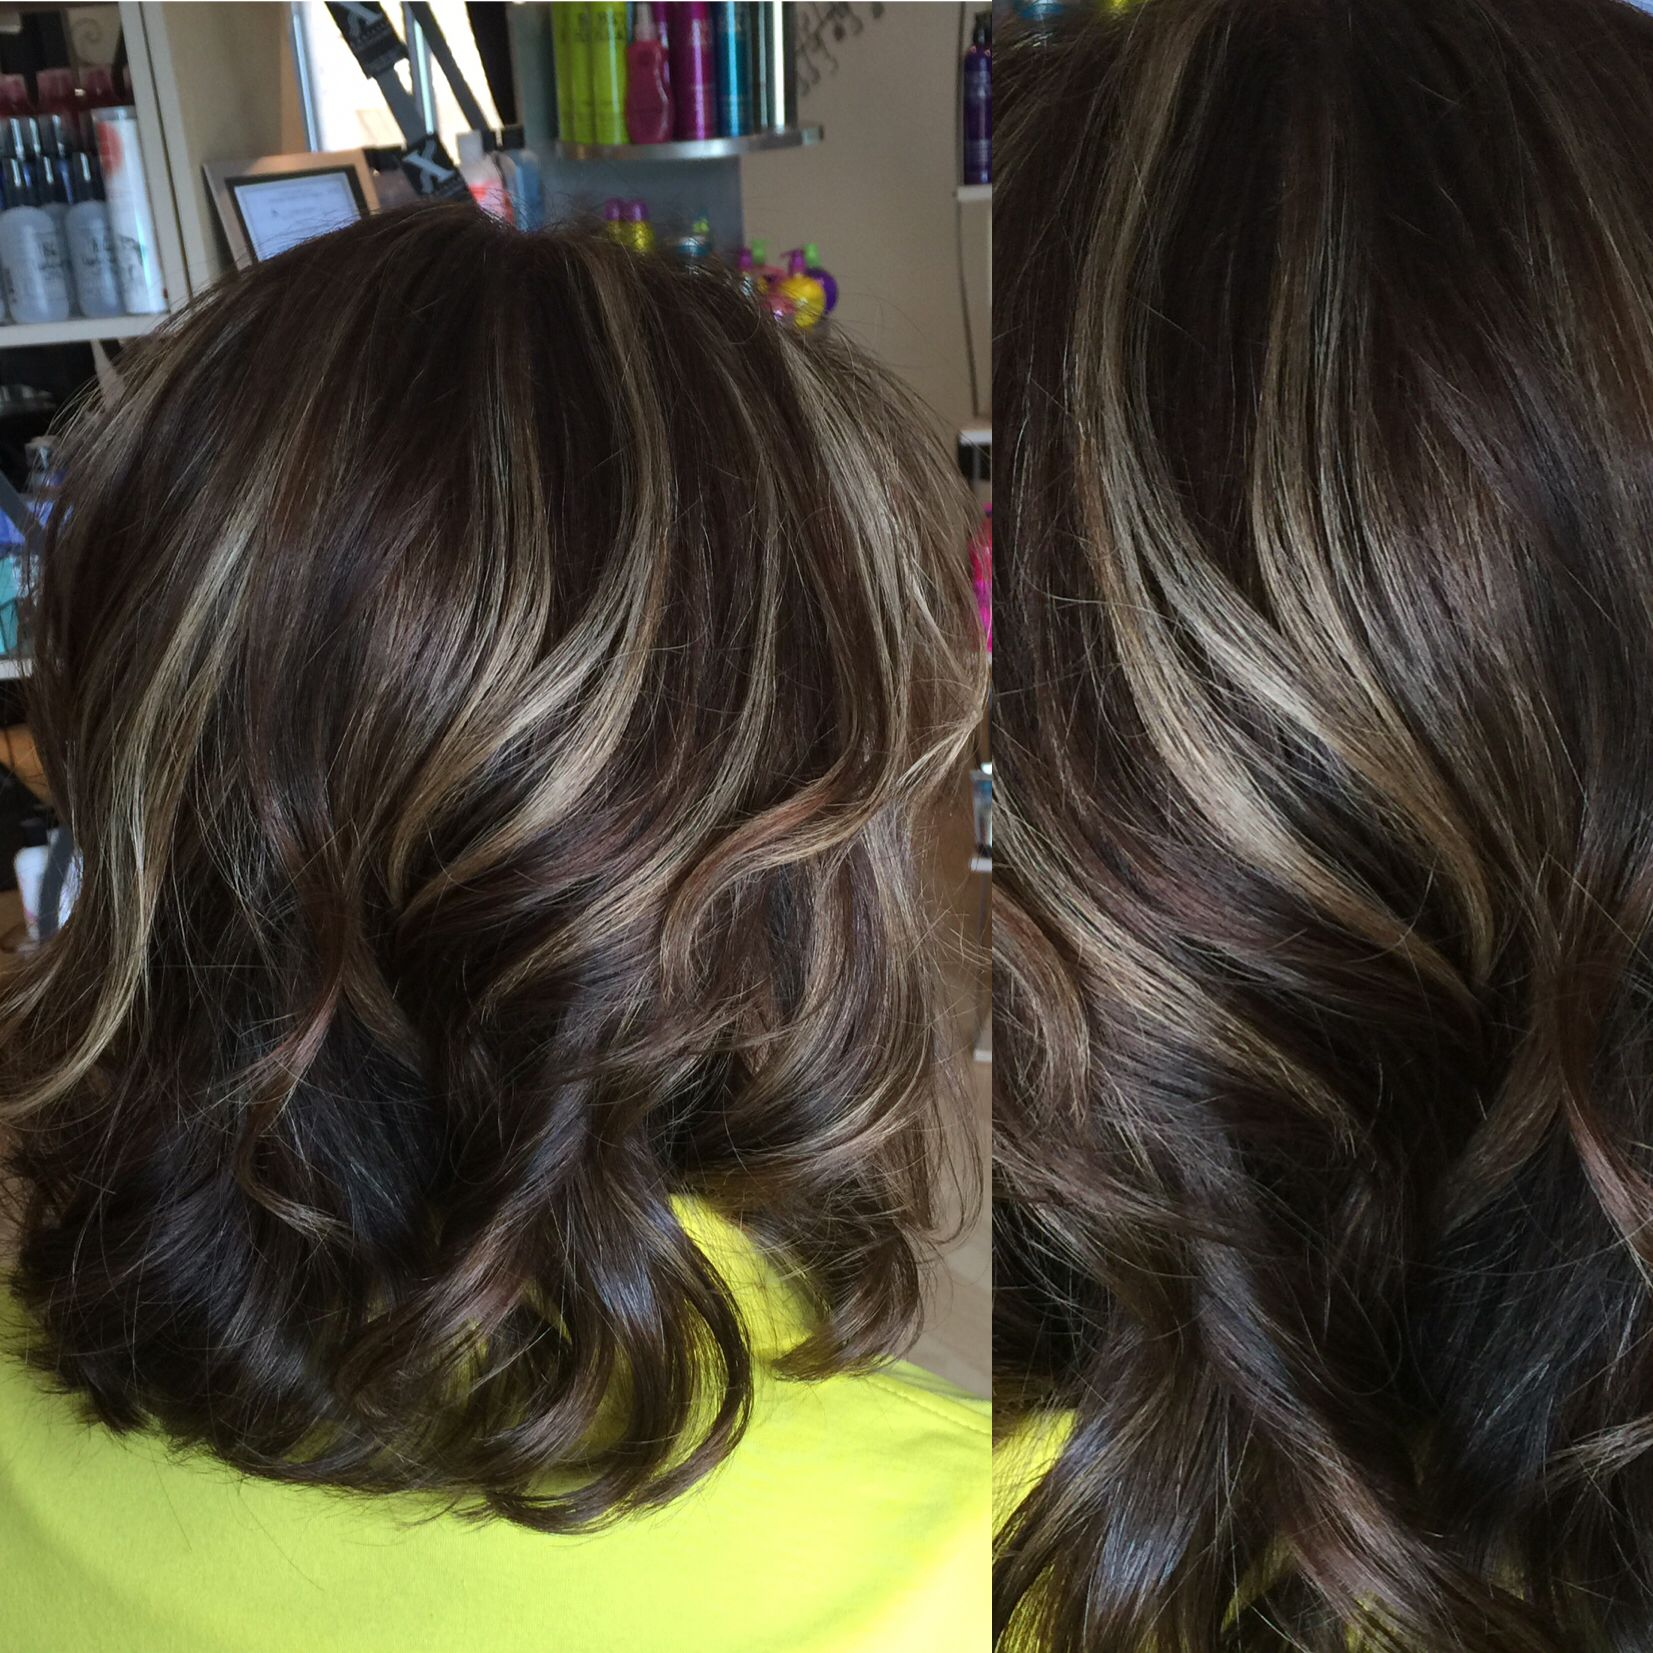 Light Beige Color For Living Room: Medium Brown Hair Color With Light Beige Highlights On The